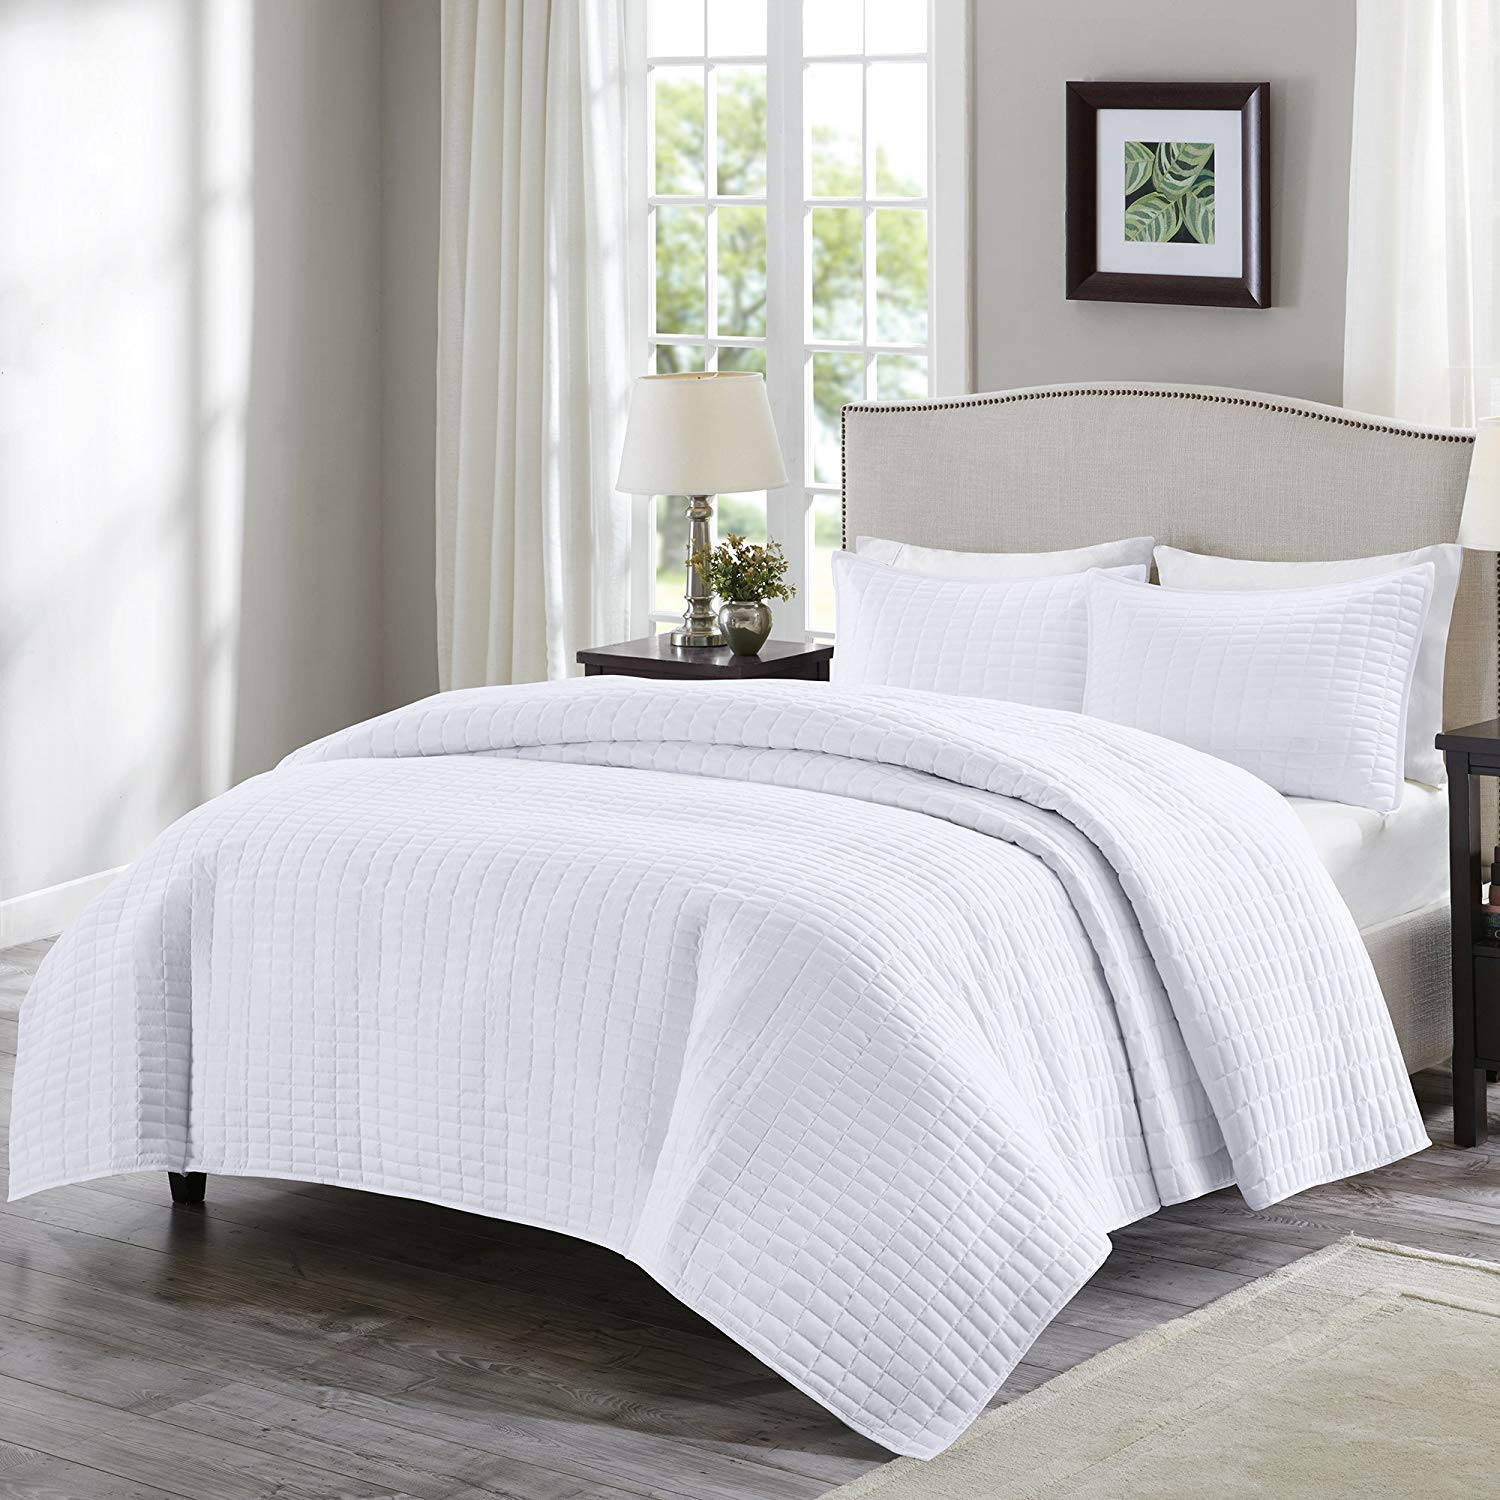 Comfort Spaces Kienna 3 Piece Quilt Coverlet Bedspread Ultra Soft Hypoallergenic Microfiber Stitched Bedding Set, Full/Queen, White